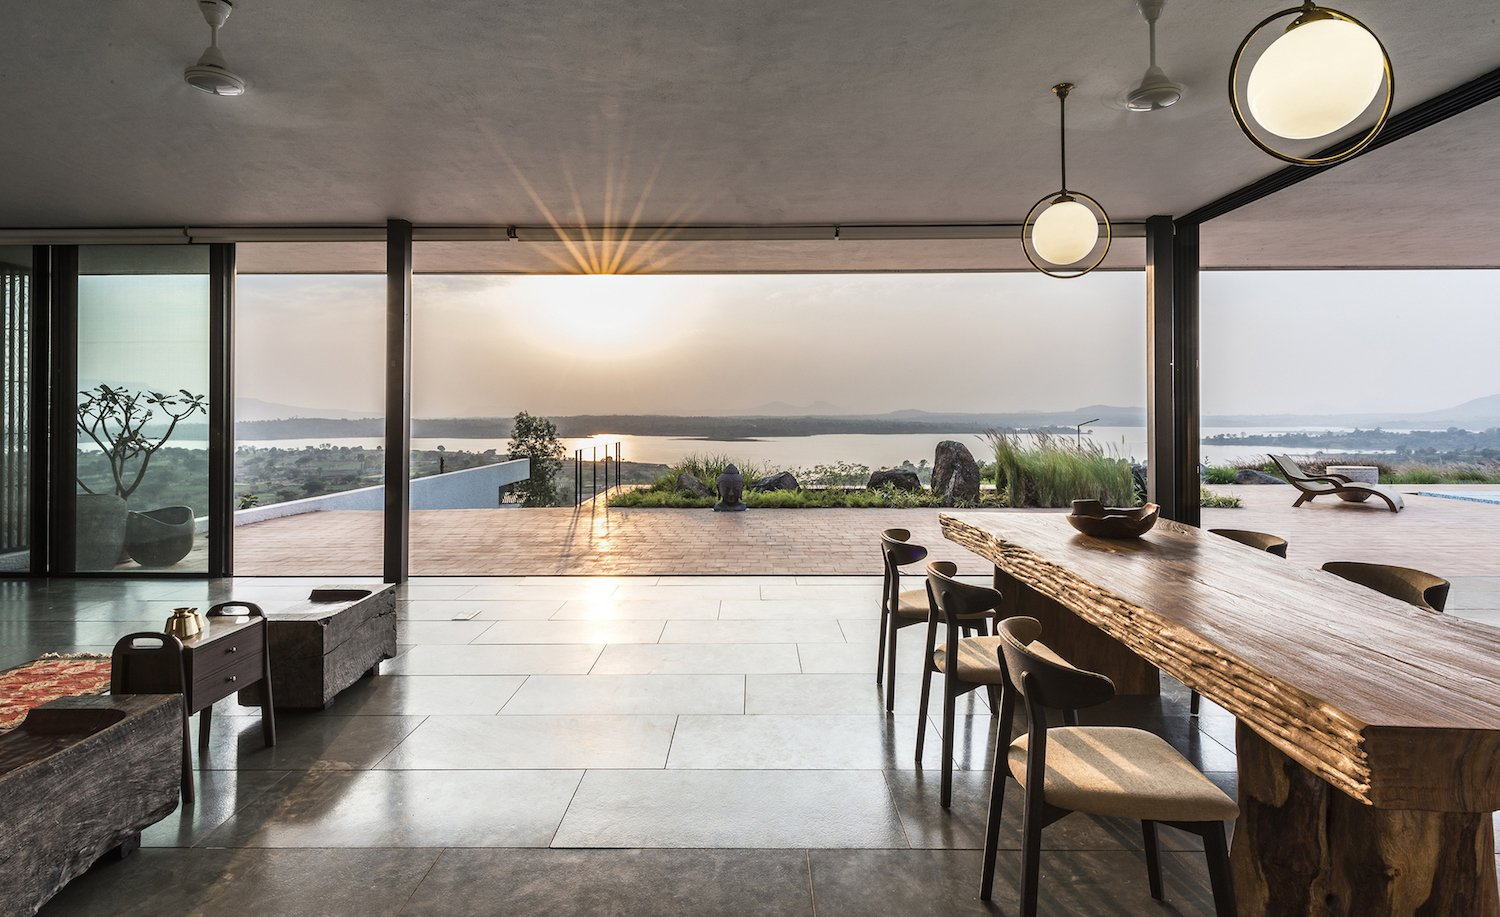 Dining Room, Table, Chair, and Pendant Lighting The open-plan dining and living area flow seamlessly into the outdoor terracotta terrace.  Photo 7 of 14 in A Modern Home in India Evokes Emotion With a Giant 4-Ton Rock